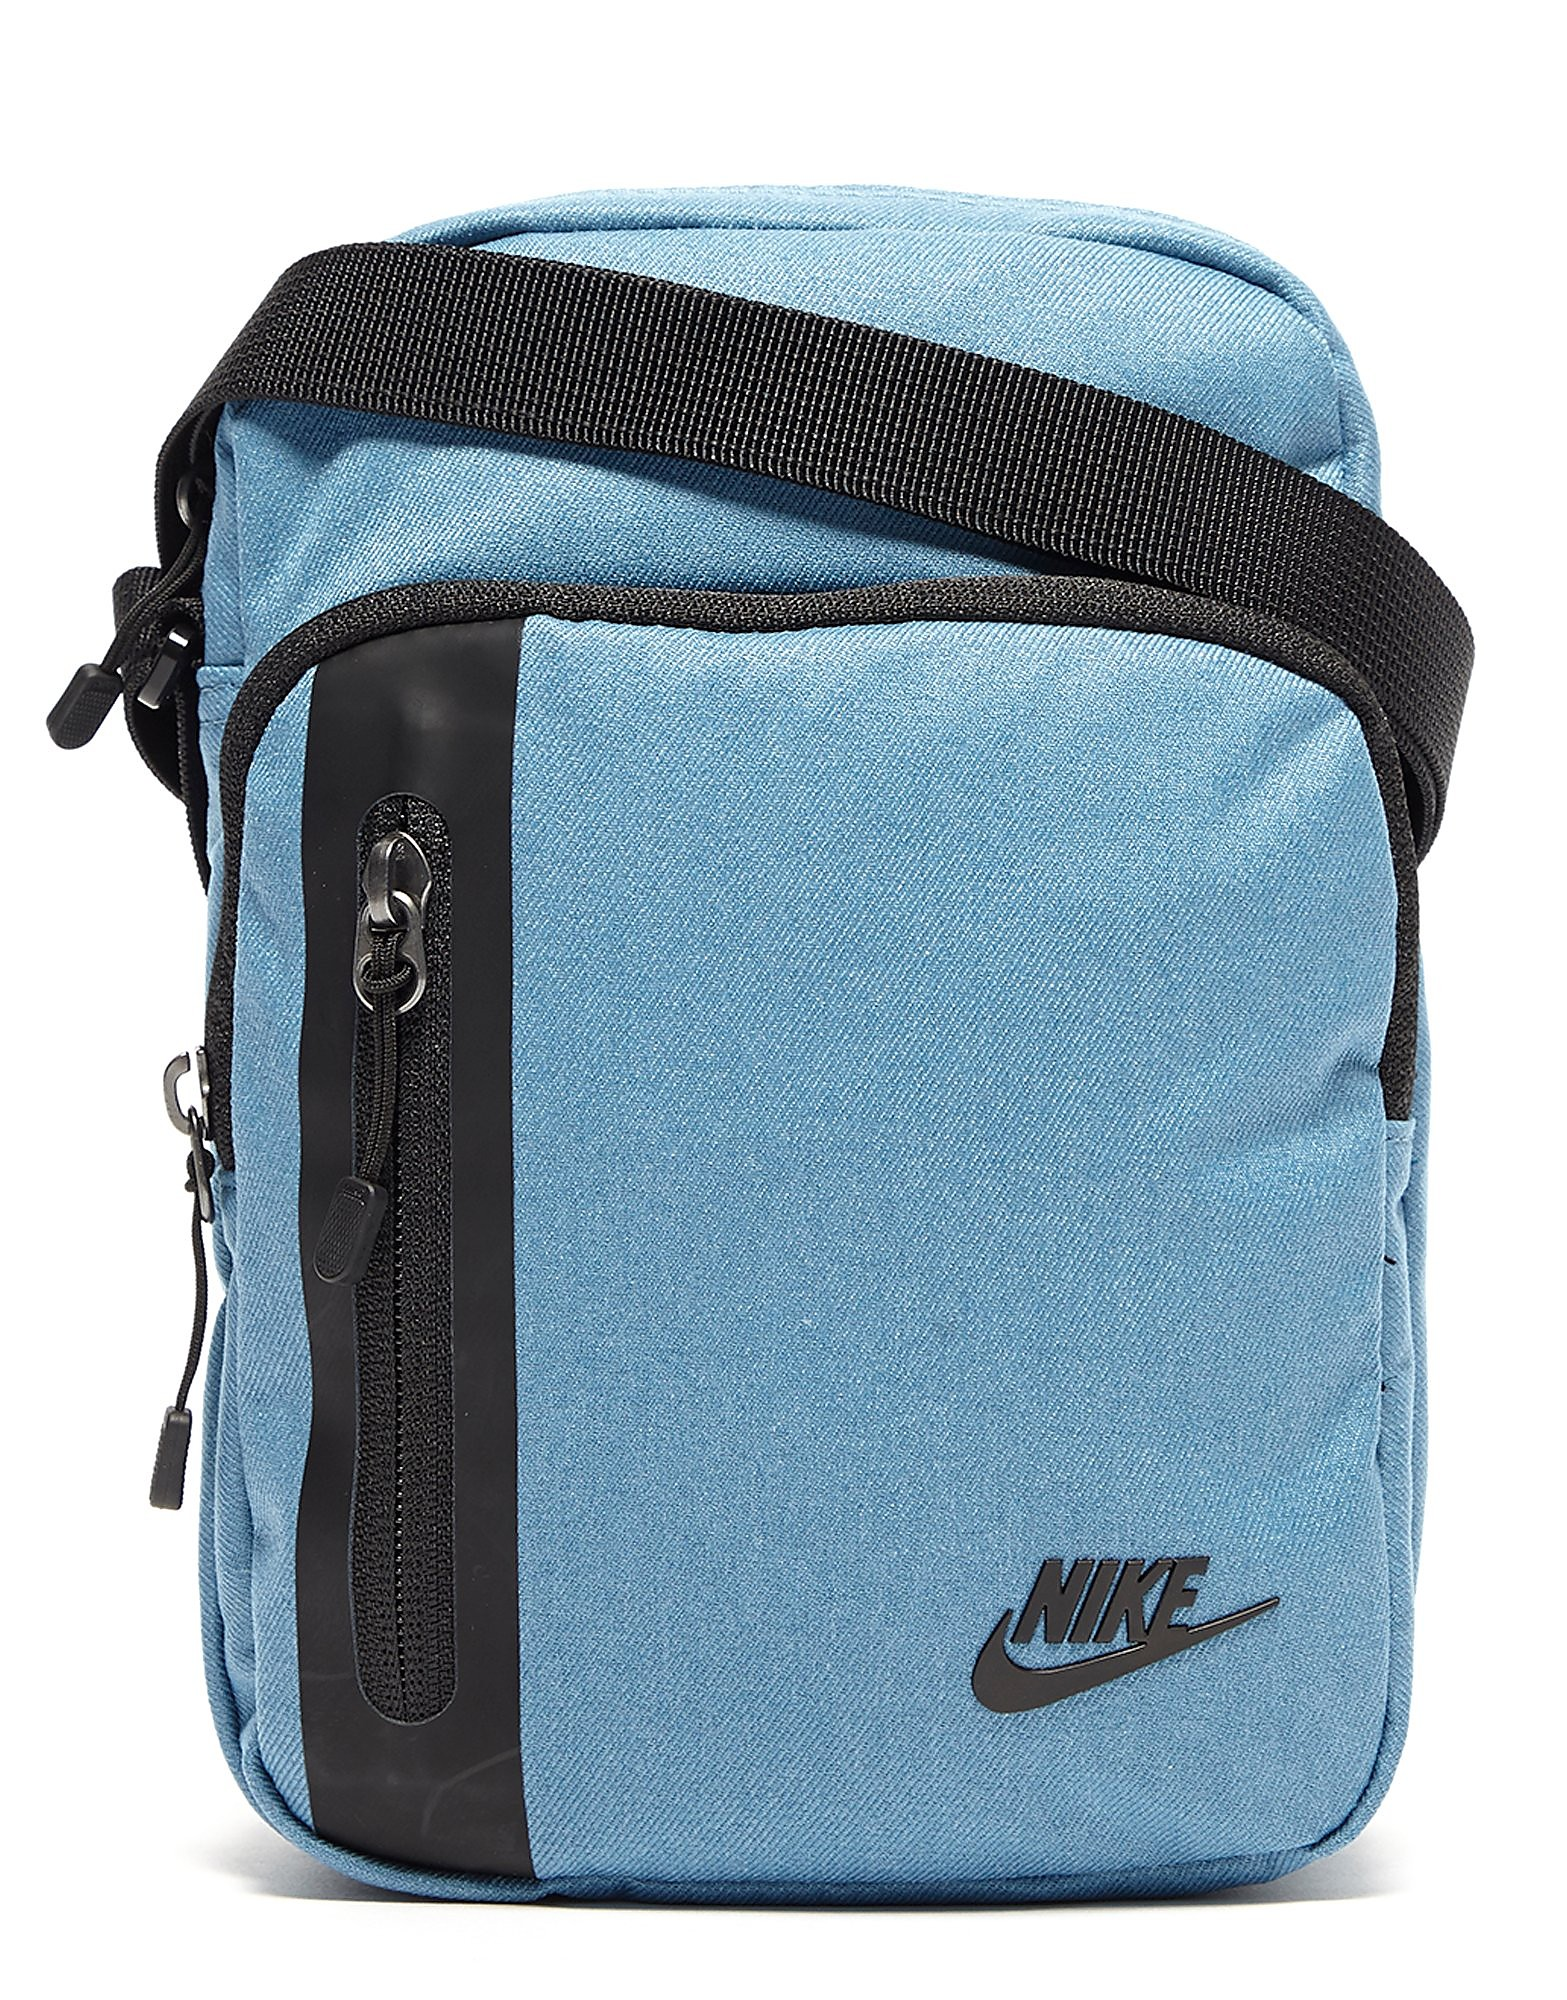 Nike Core Small Bag 3.0